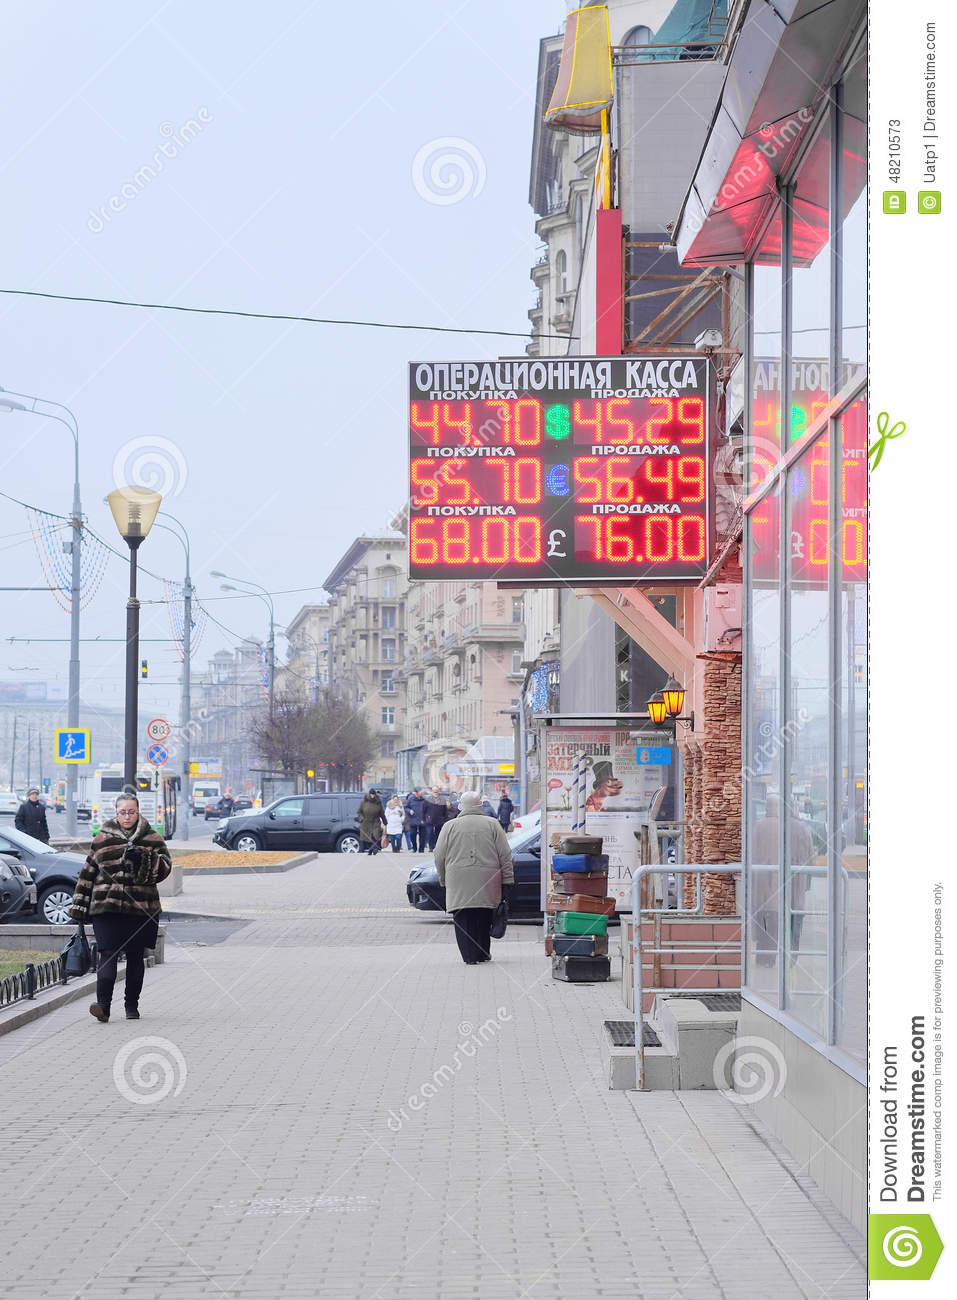 Russian trading system - board